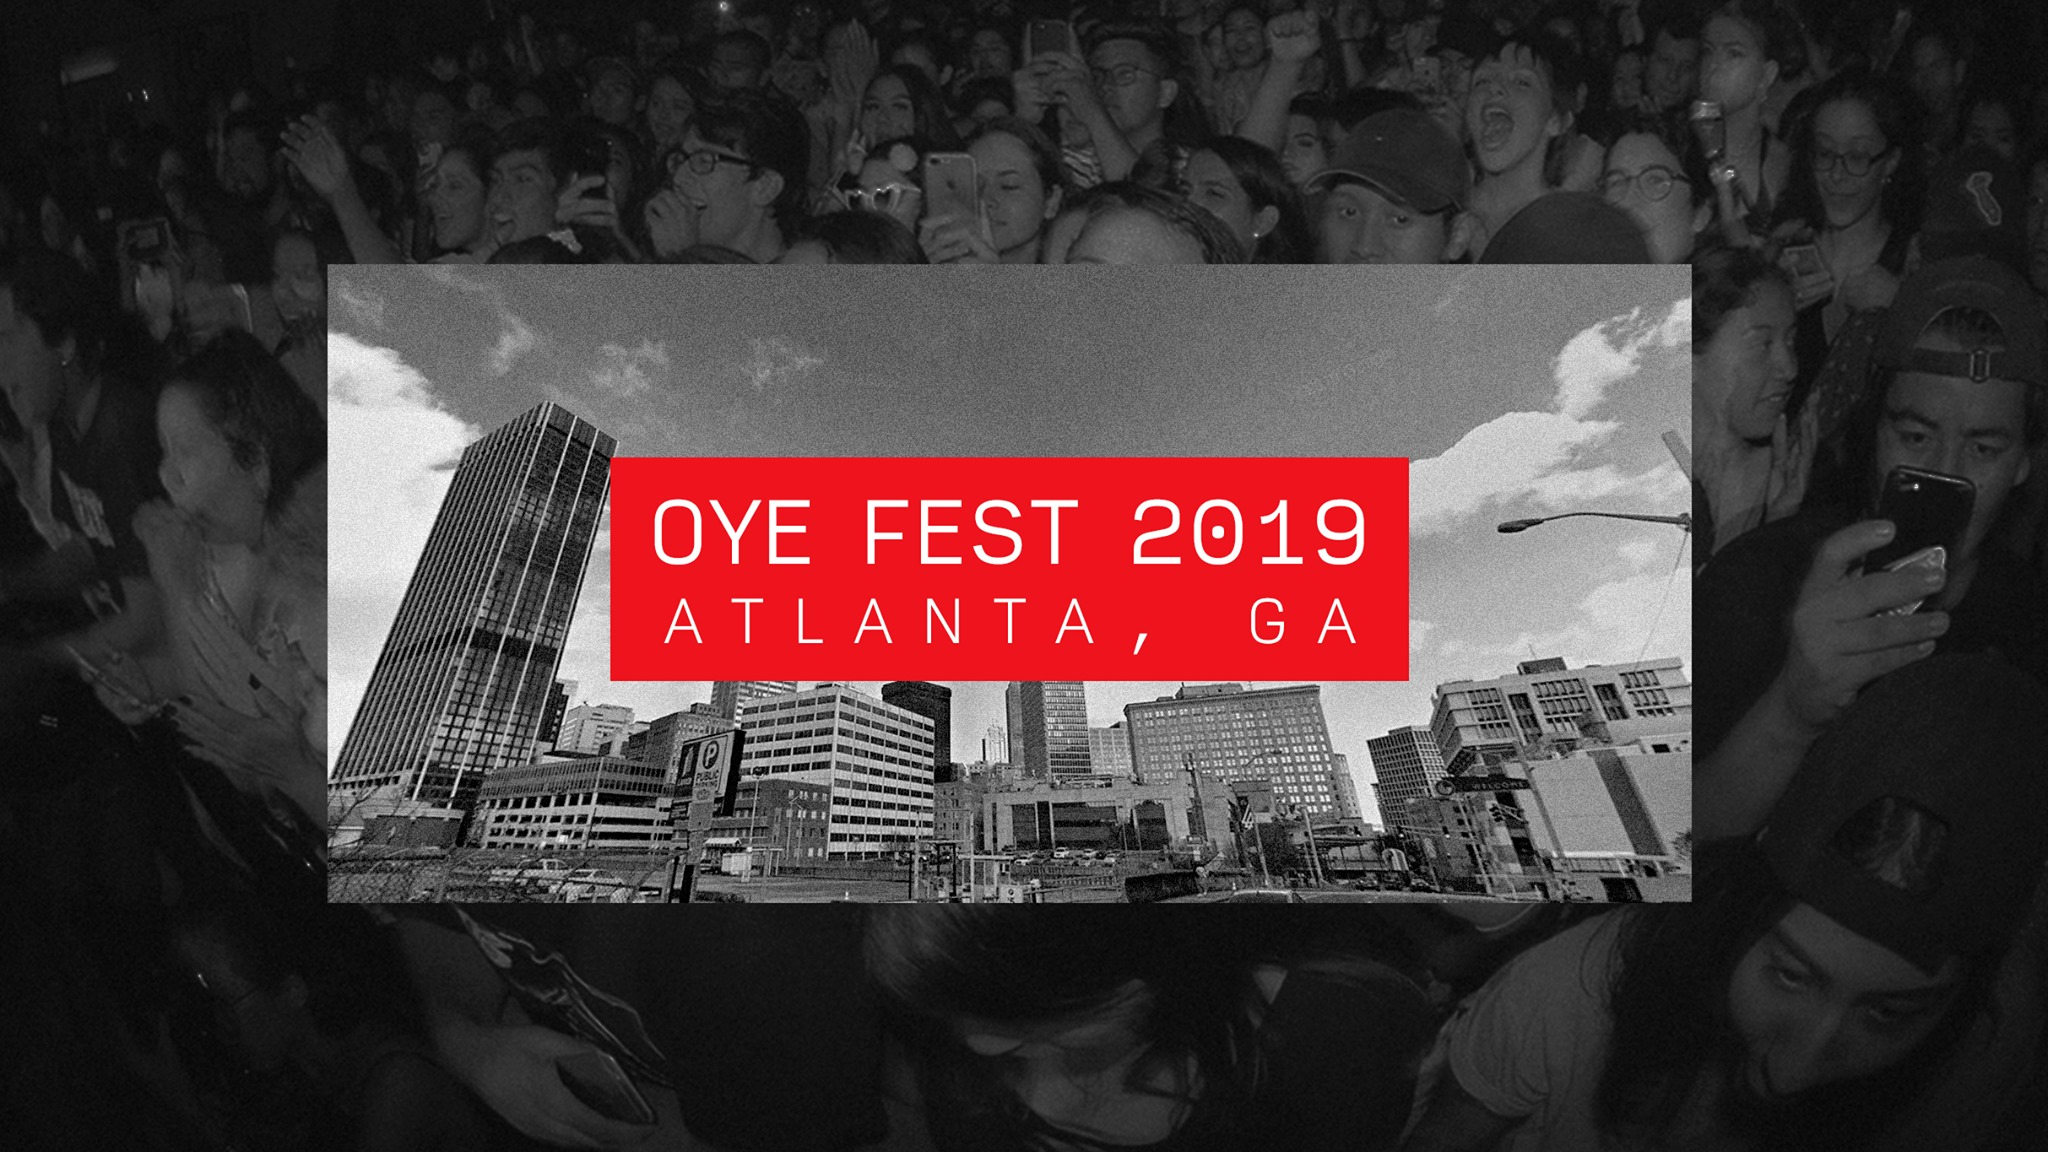 OYE Fest, Atlanta's Latinx music Festival, returns this weekend at The Masquerade.